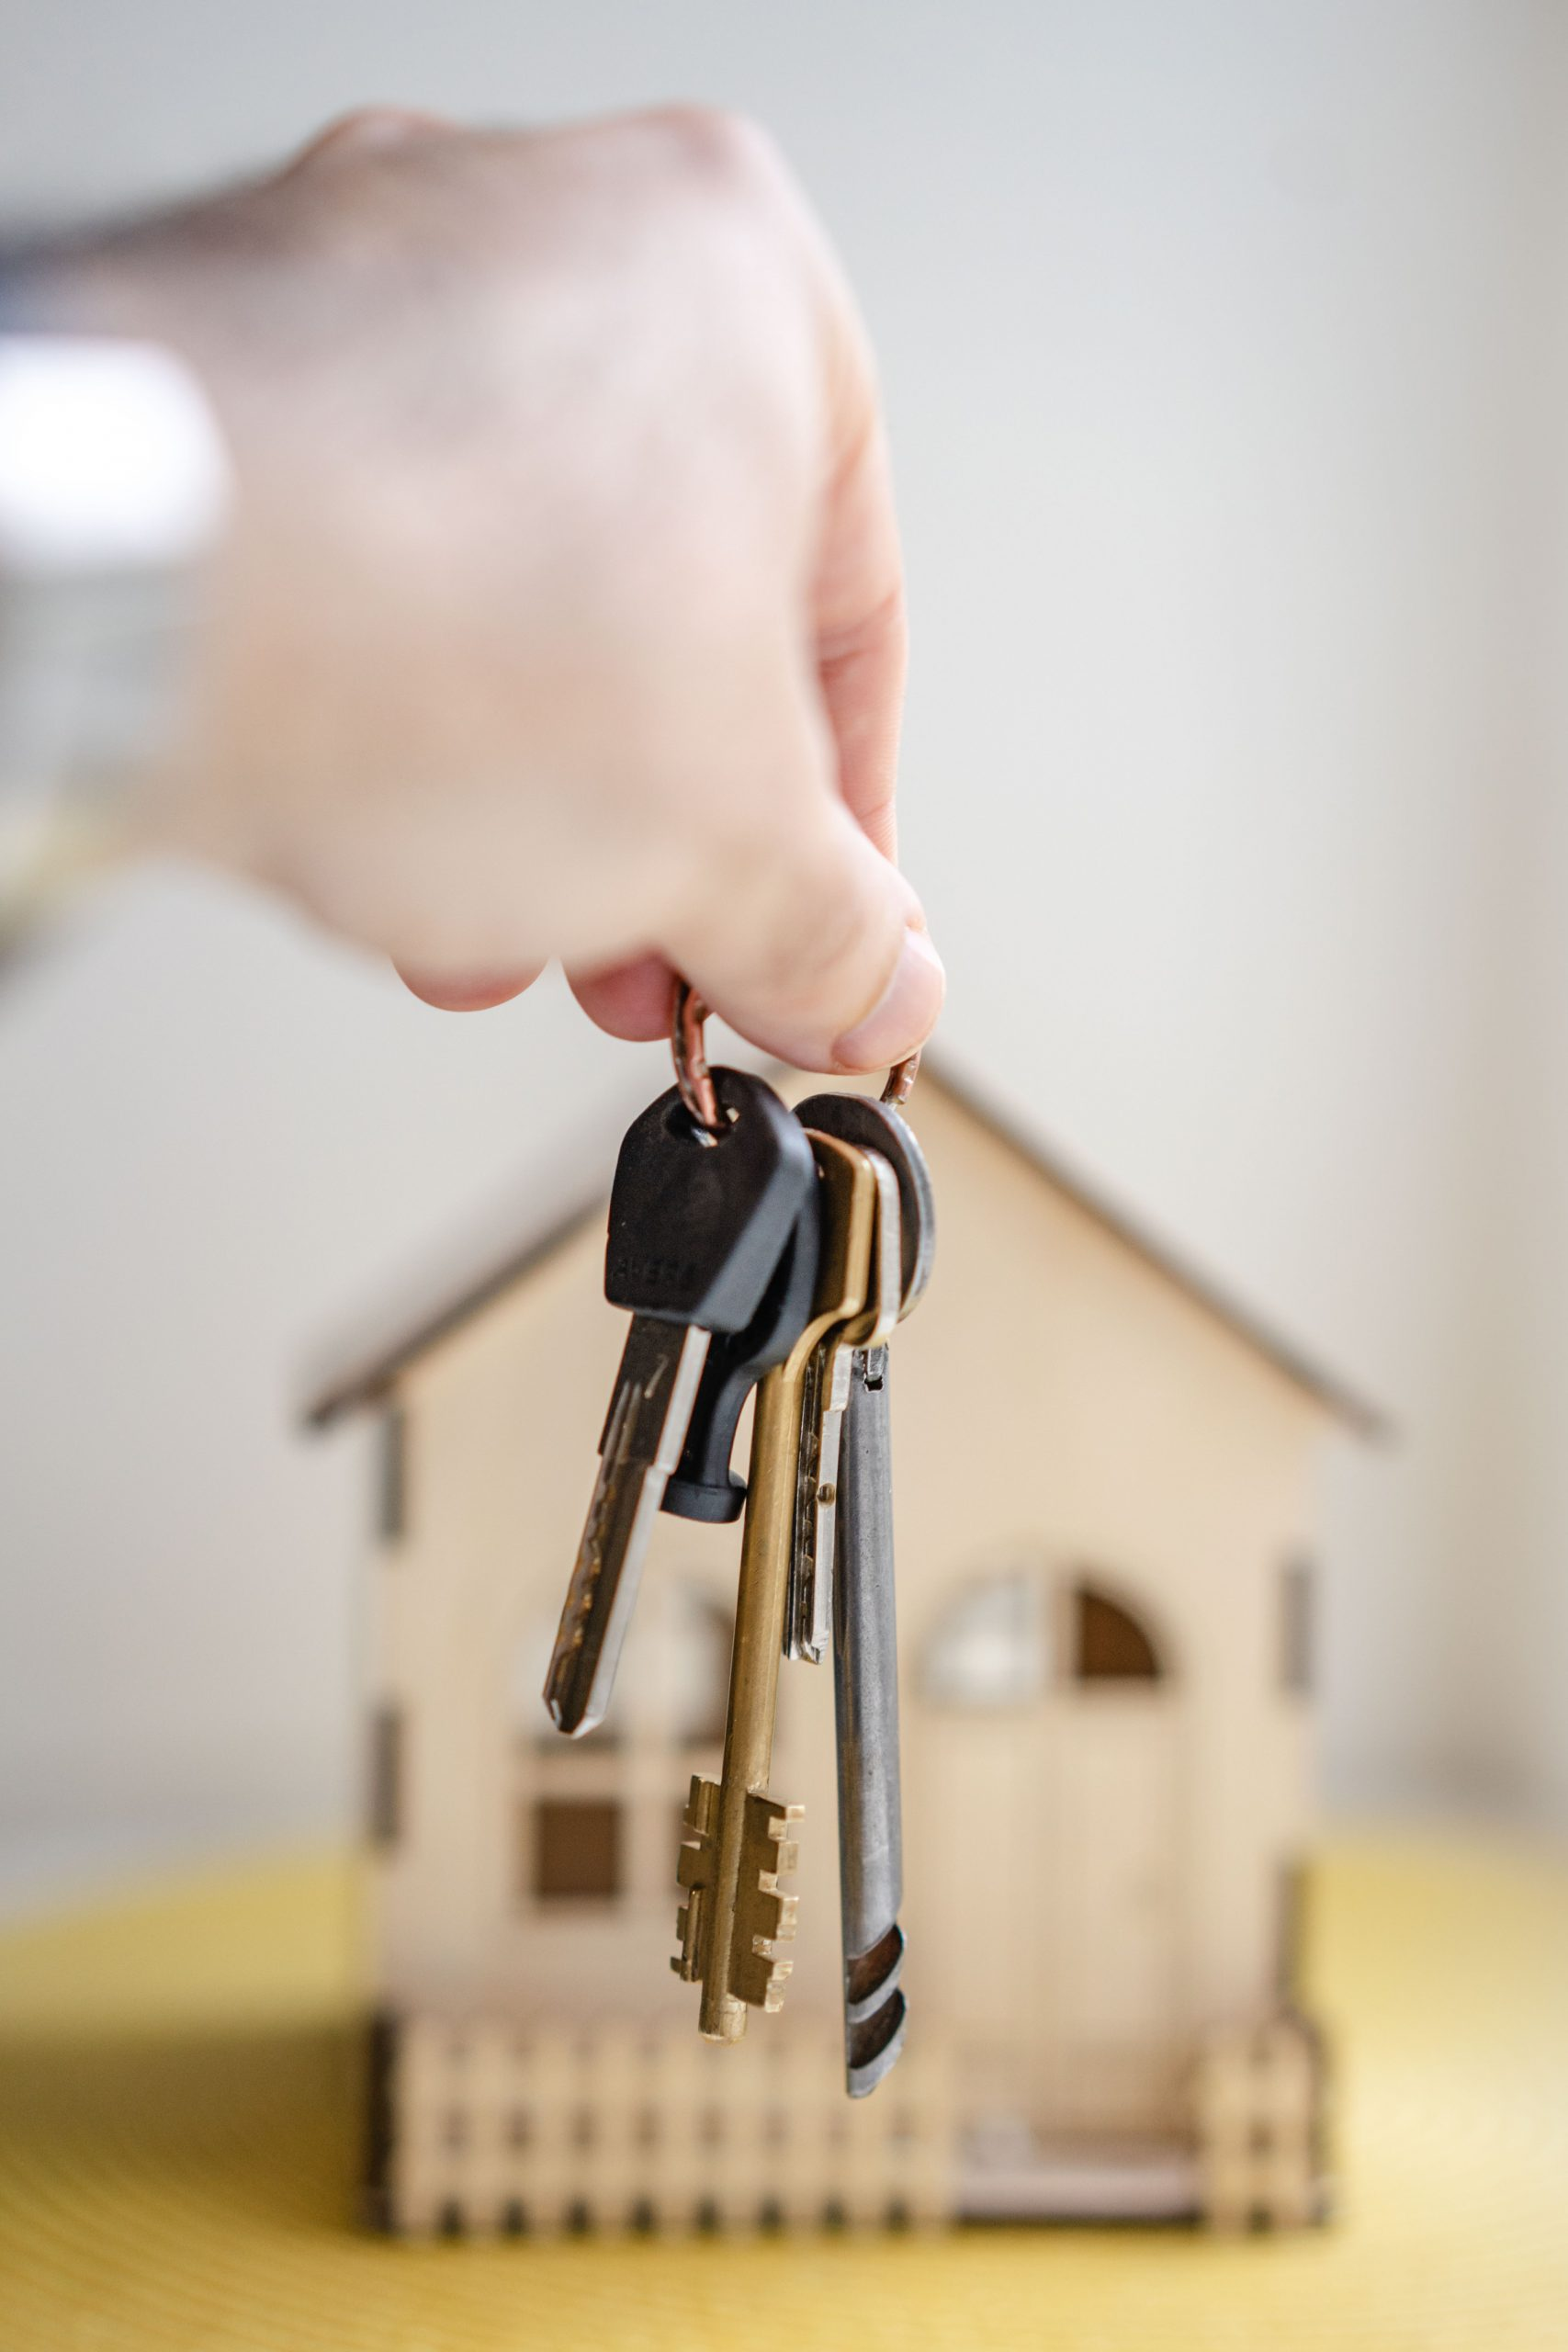 Rental Property Investment: When to Sell Yours